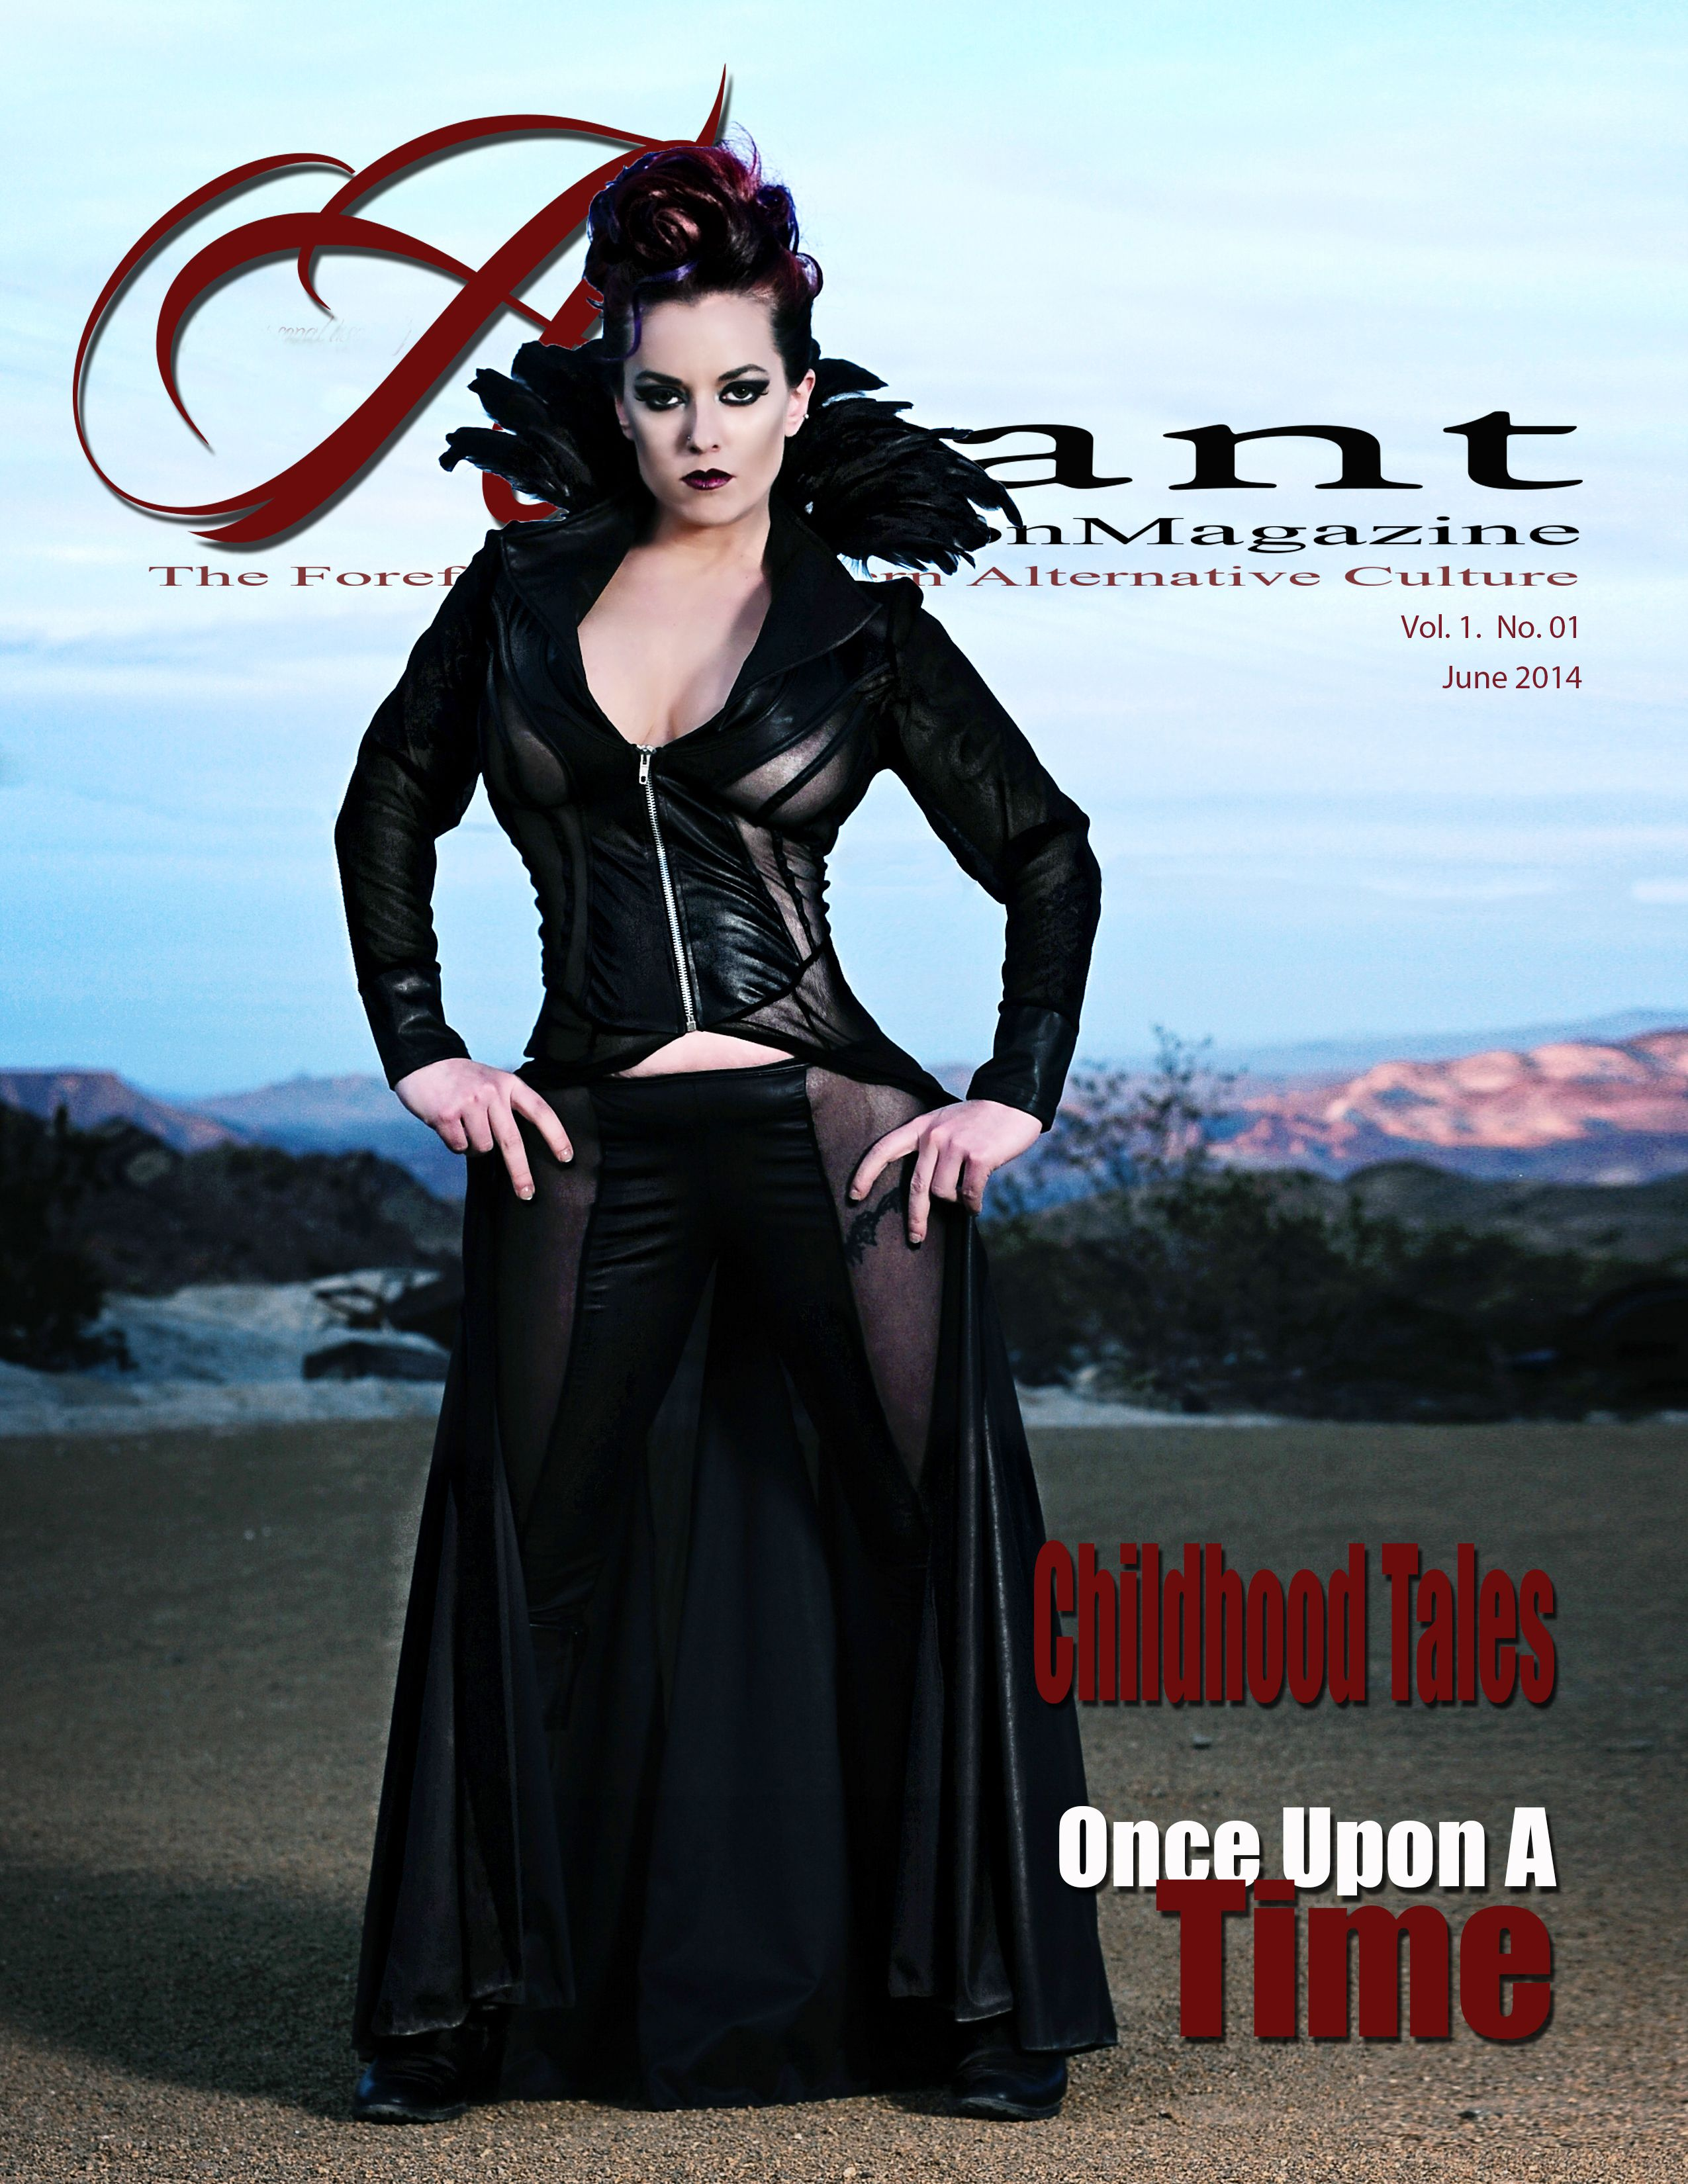 Once Upon A Time Cover with lstacey renee and keri pettit